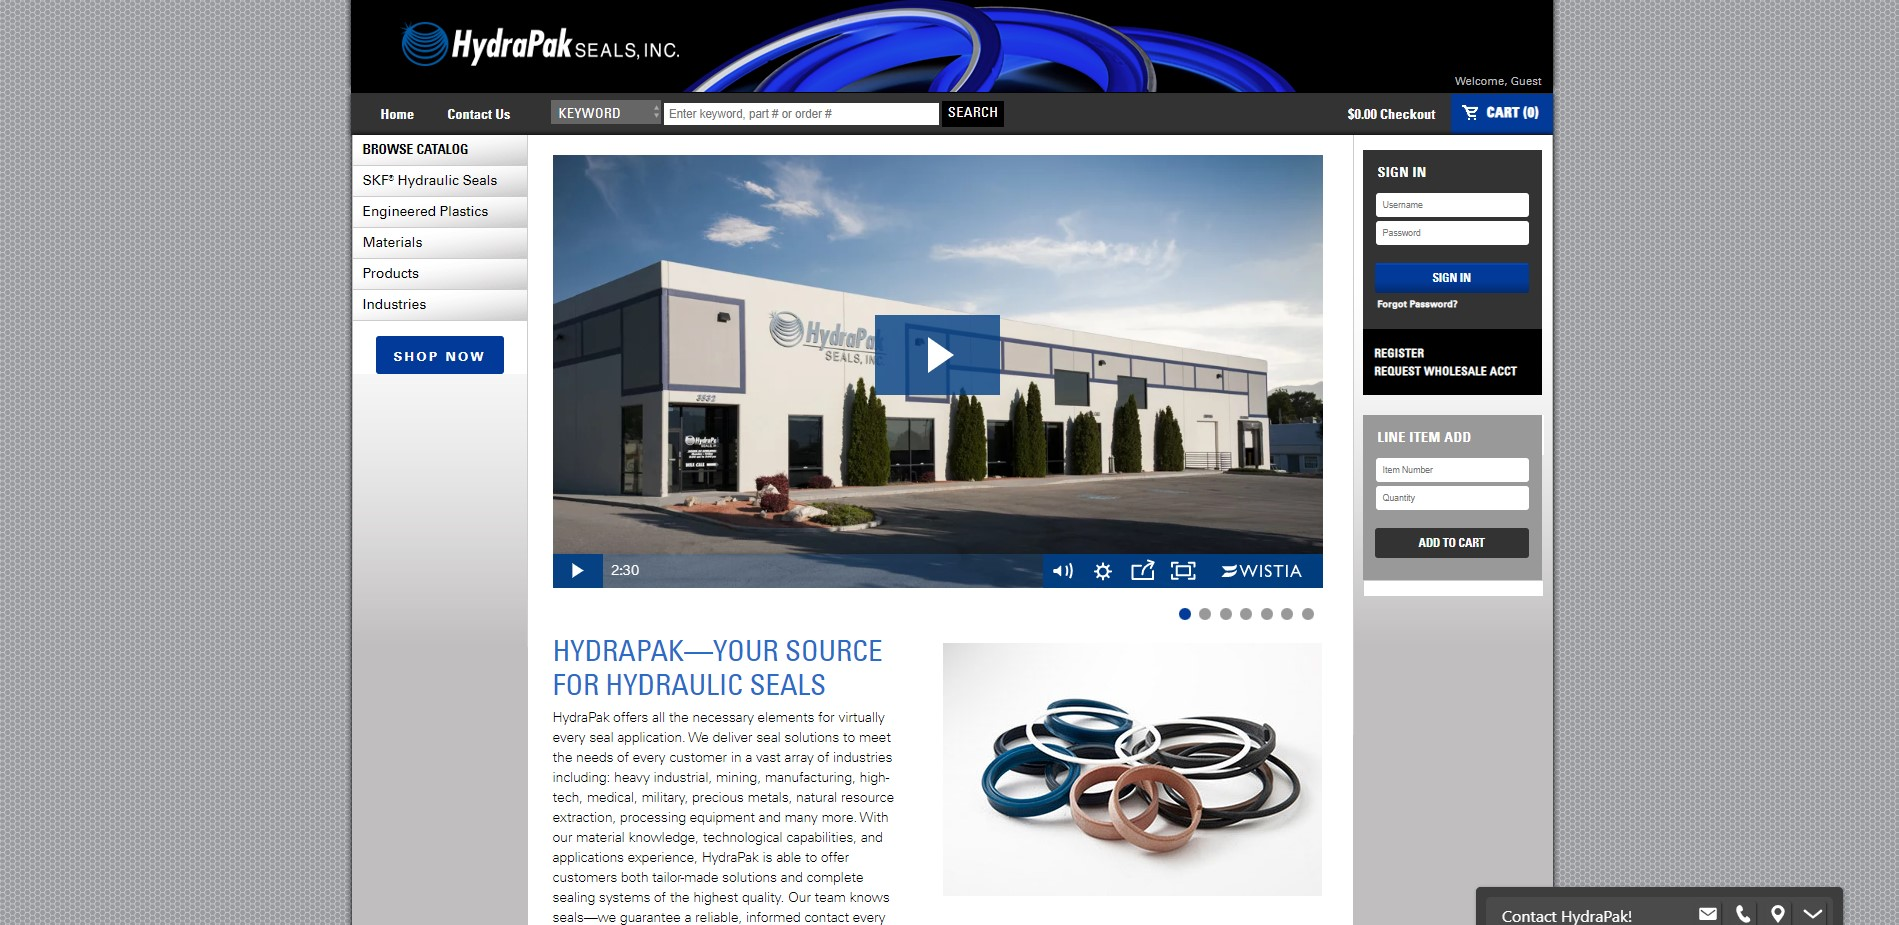 HydraPak Seals, Inc.